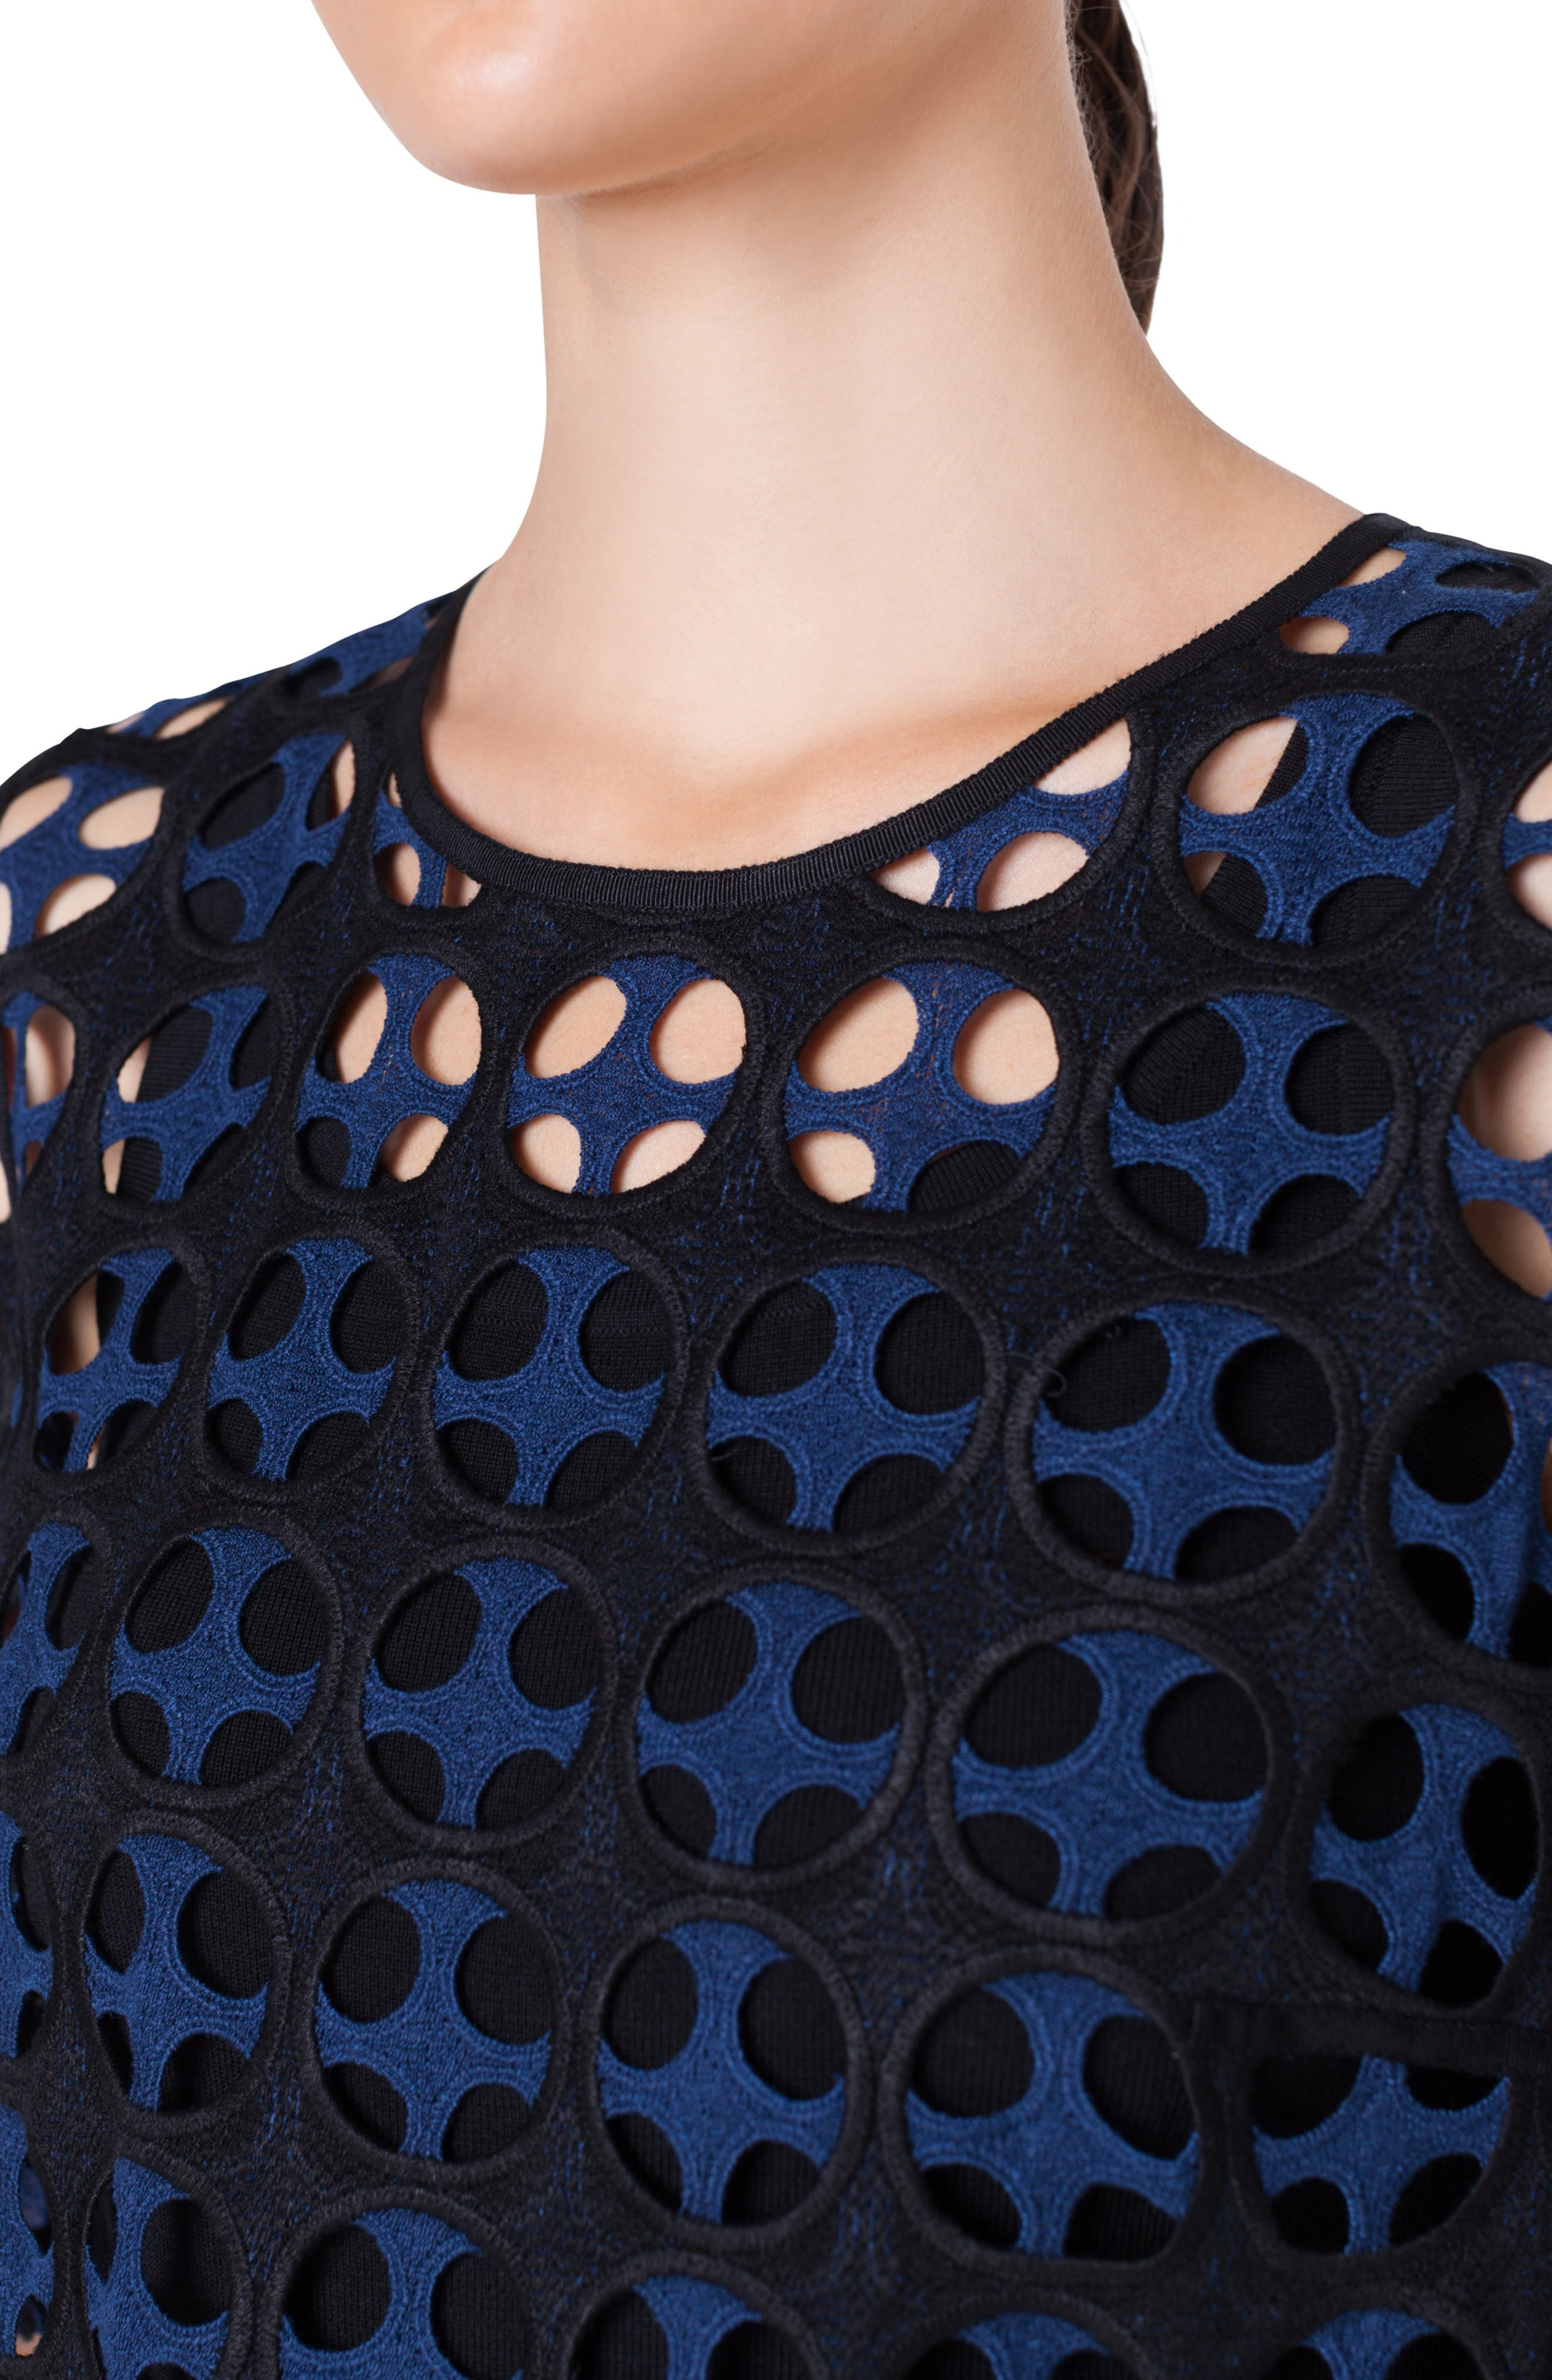 AKRIS PUNTO,                             Laser Cut Lace Blouse,                             Alternate thumbnail 3, color,                             NERO-BLU MARE